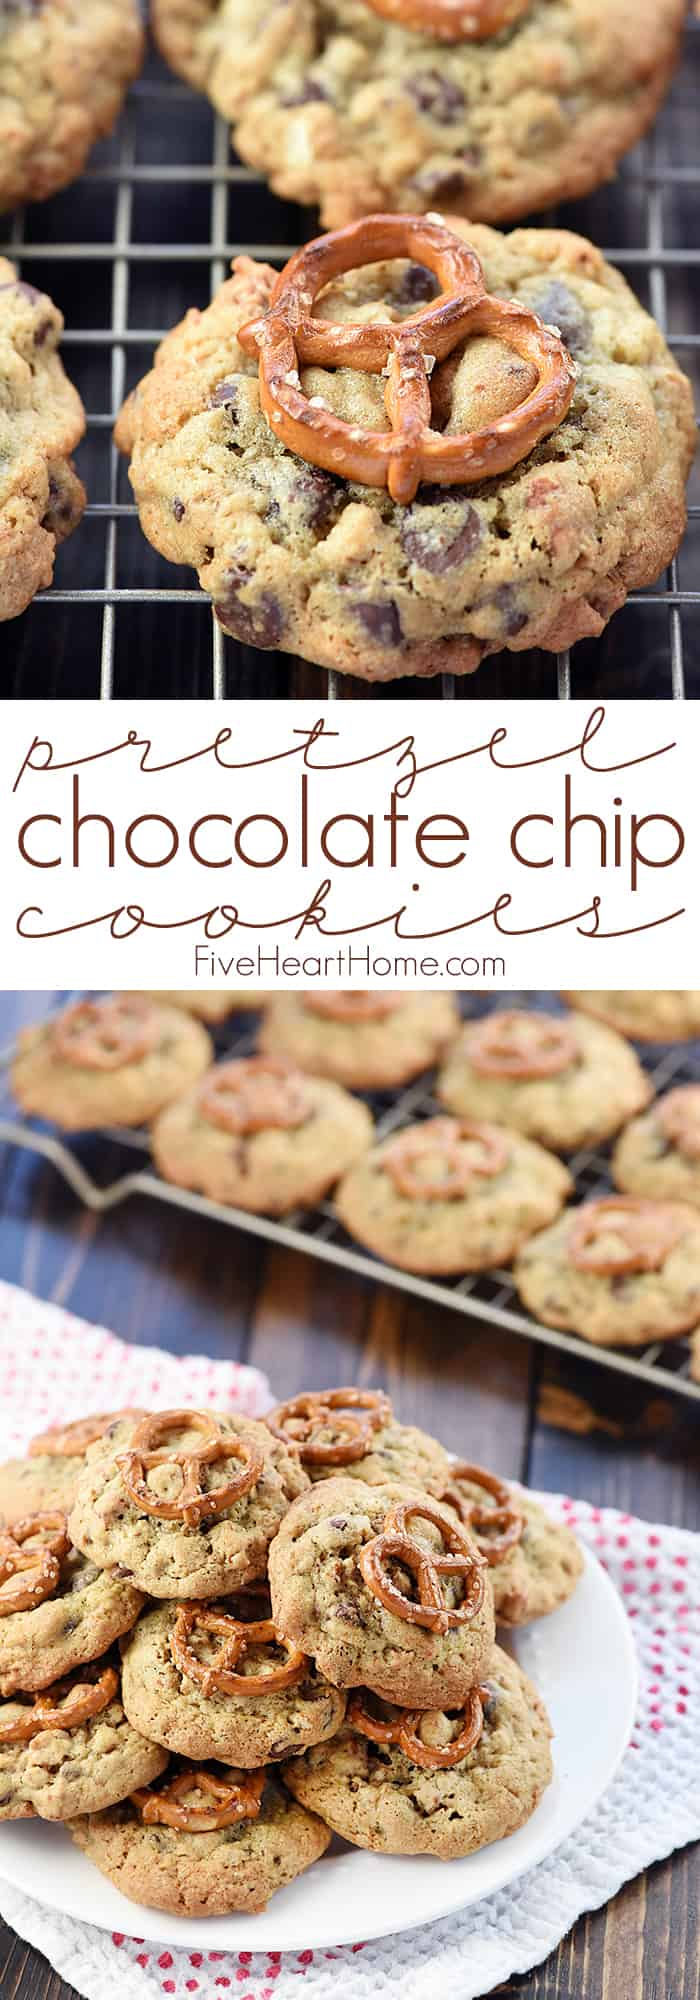 Pretzel Chocolate Chip Cookies Collage with Text Overlay